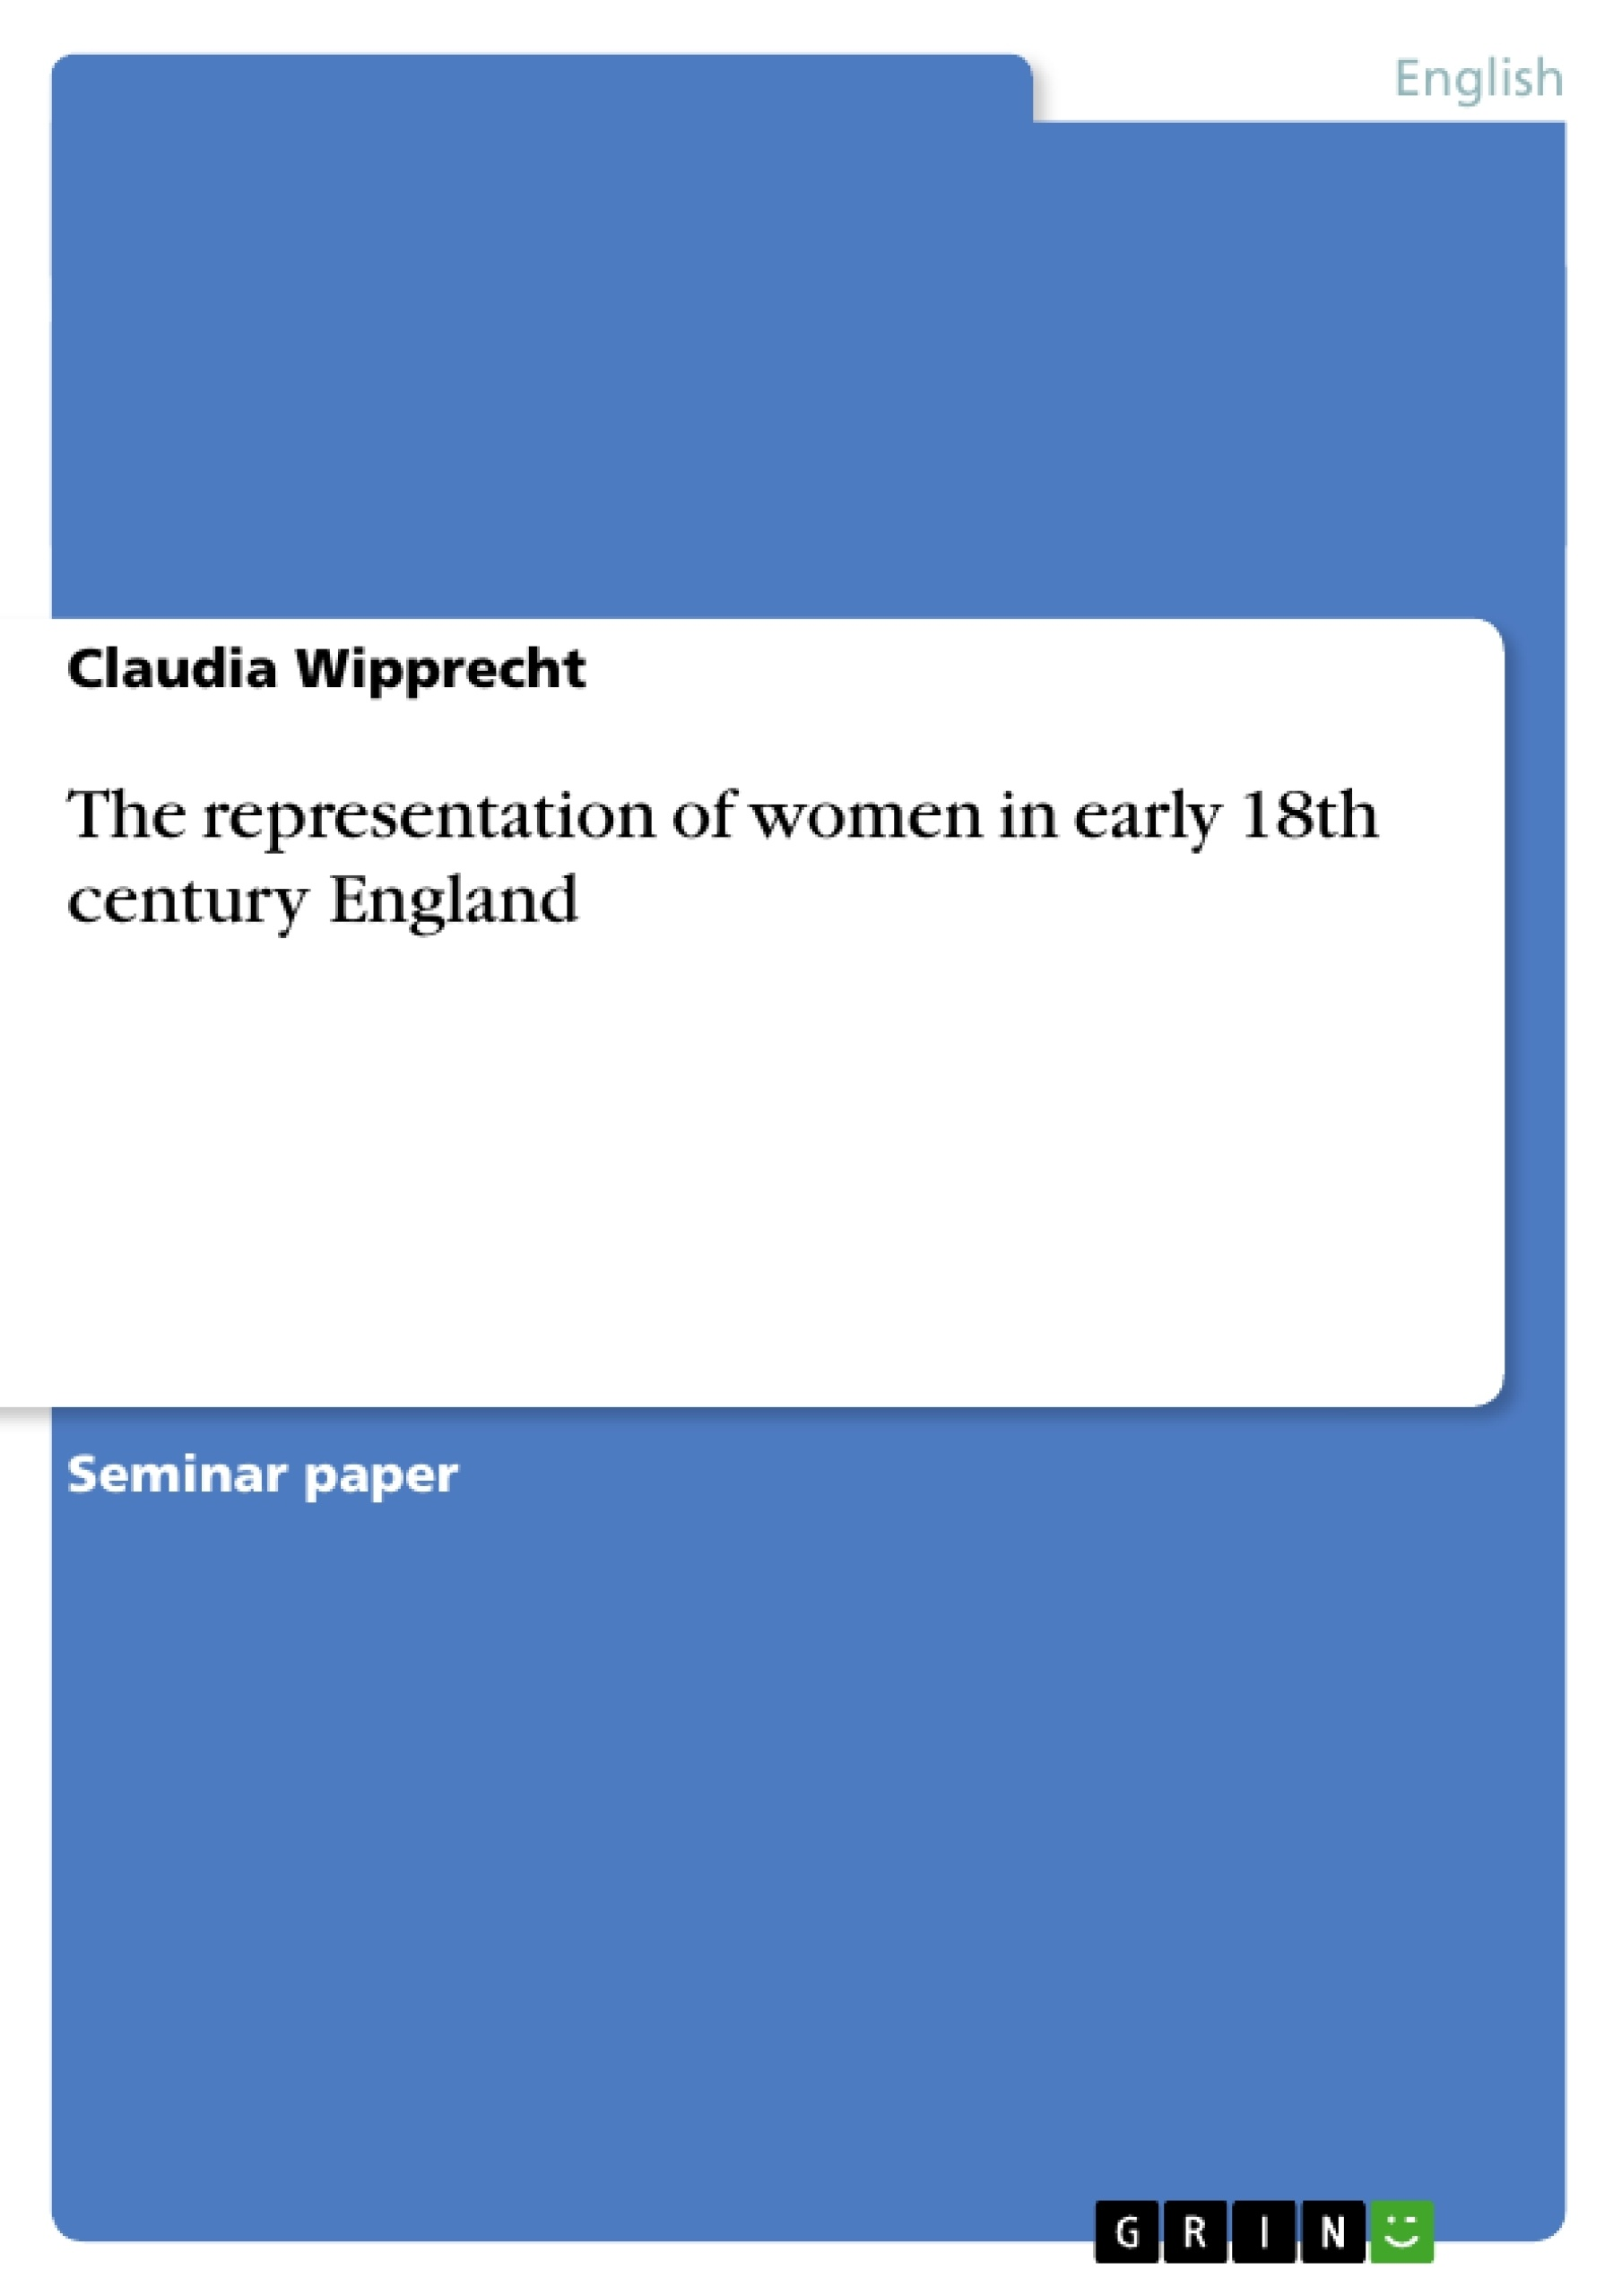 Title: The representation of women in early 18th century England